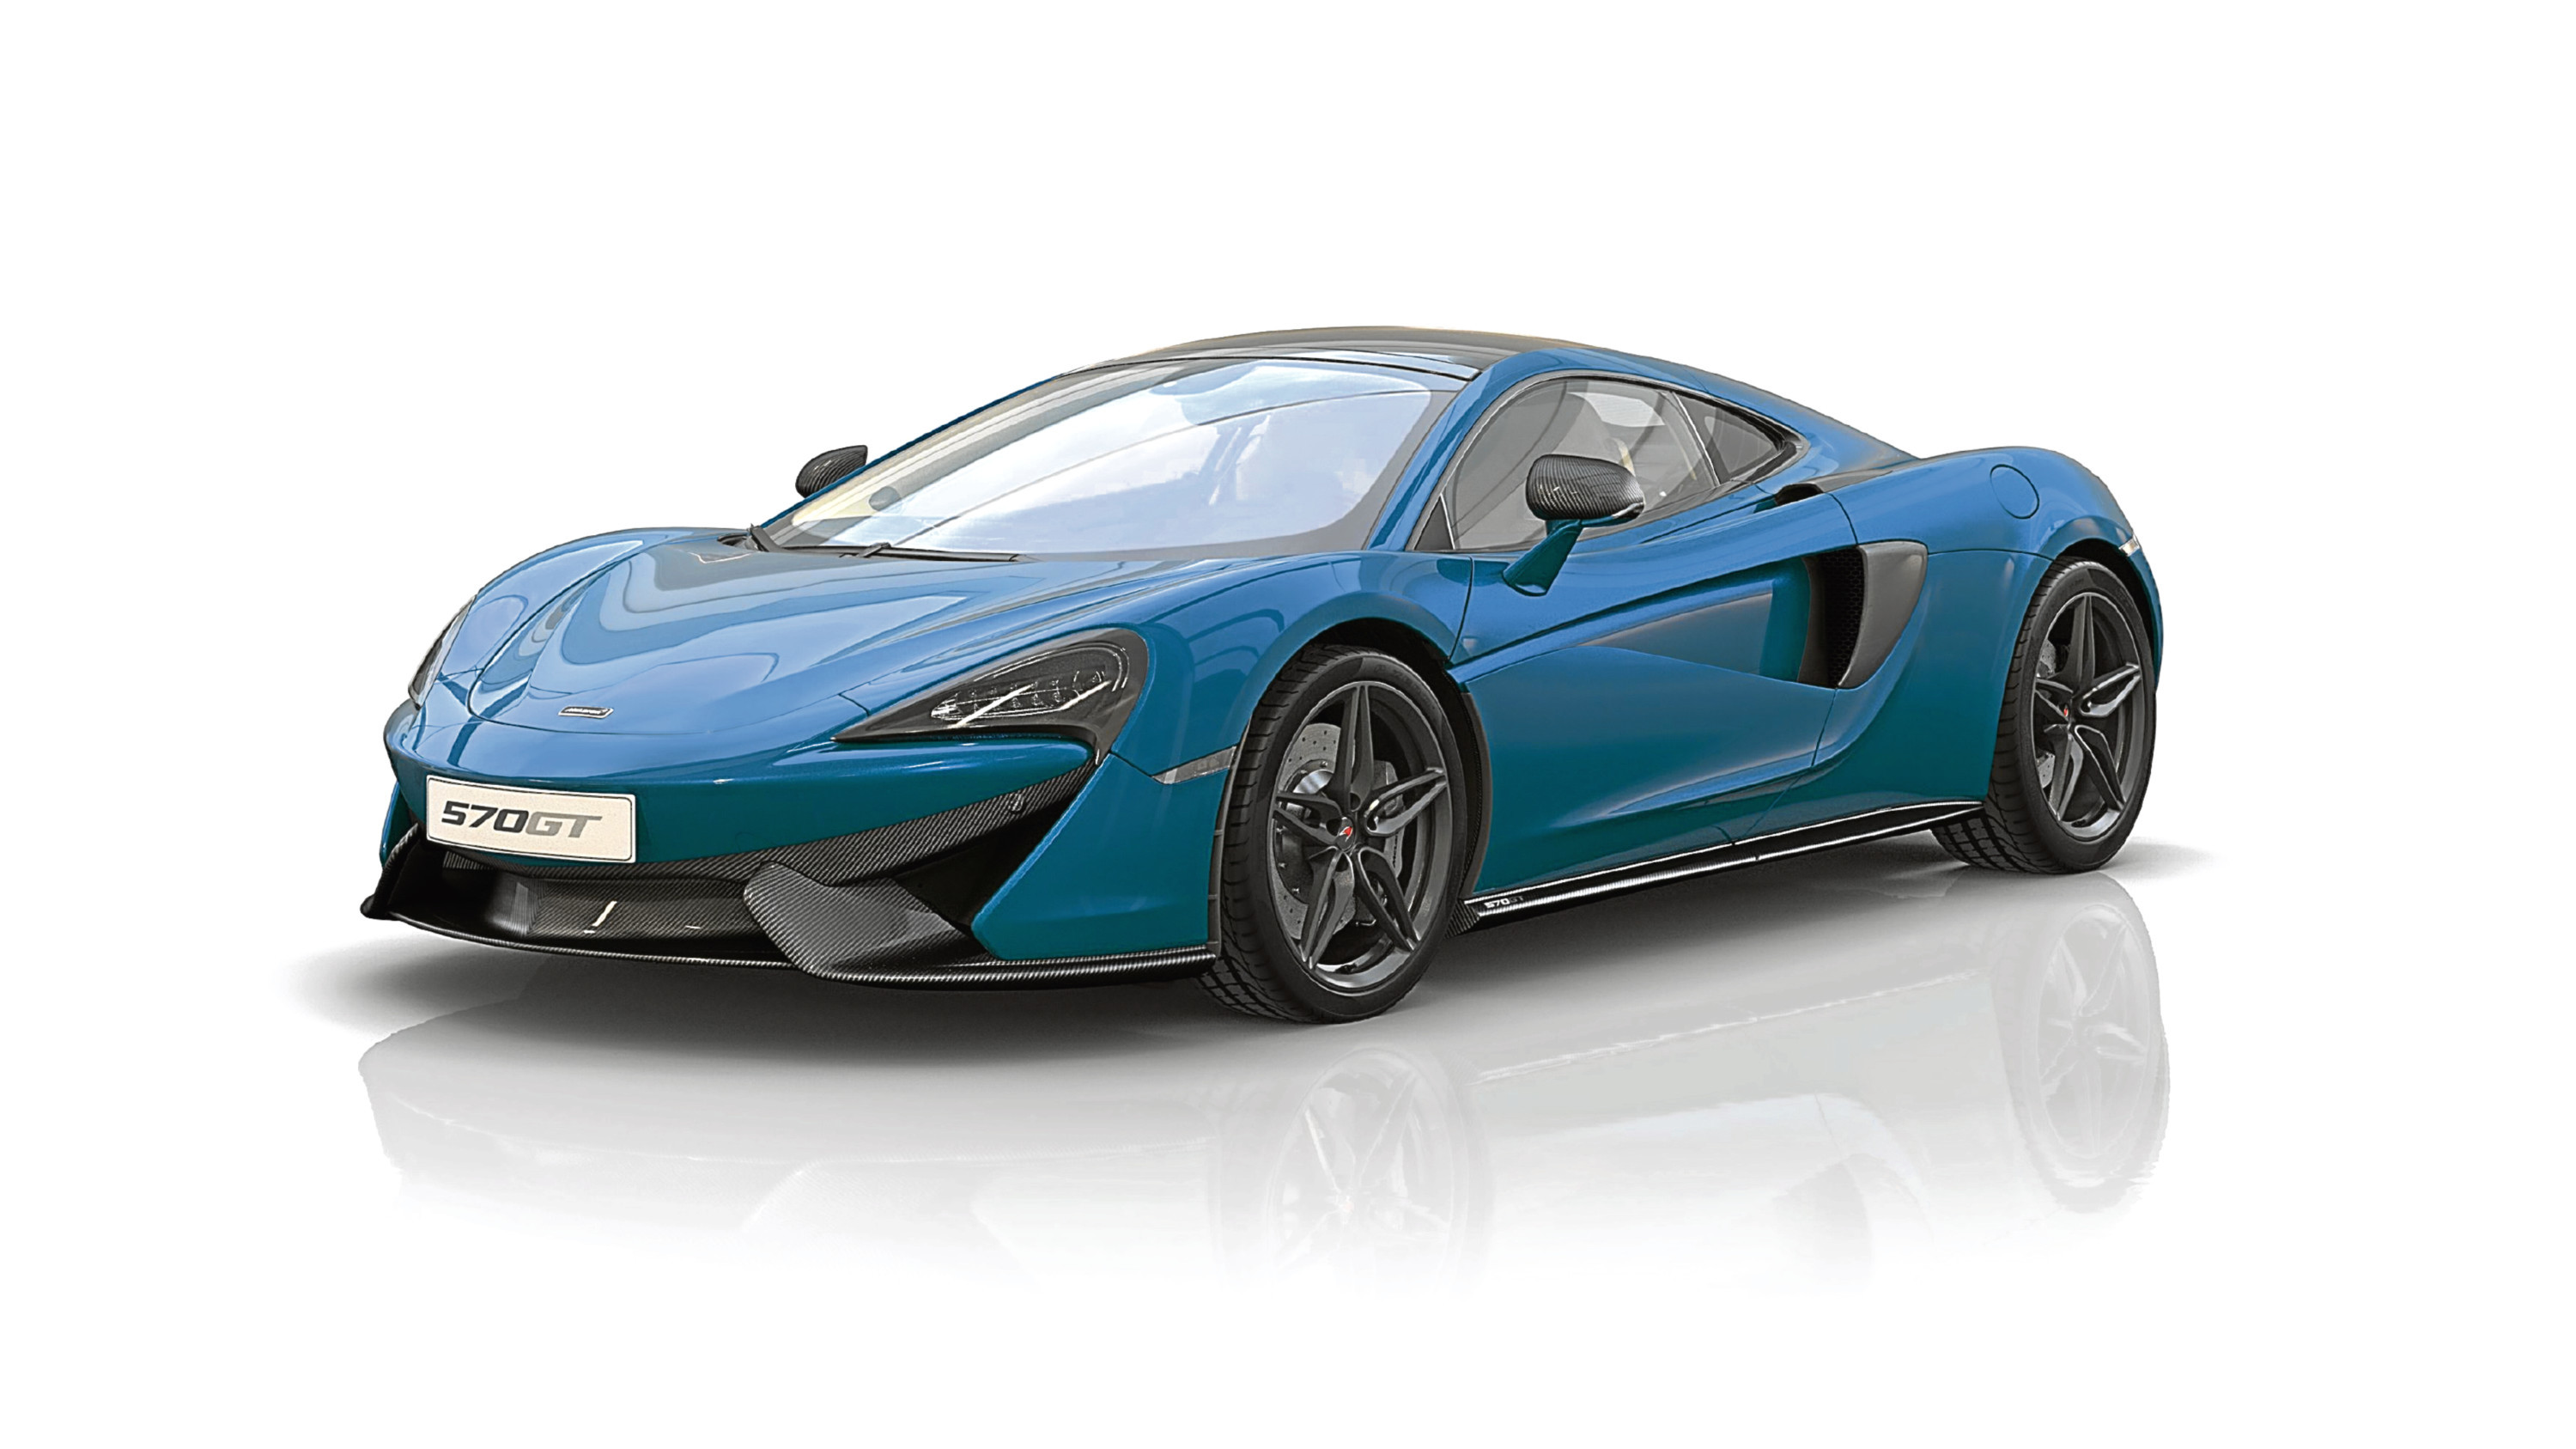 Undated Handout Photo of the 570GT Commemorative Edition, a low volume version of McLaren's exciting GT car. See PA Feature MOTORING News. Picture credit should read: PA Photo/McLaren. WARNING: This picture must only be used to accompany PA Feature MOTORING News.